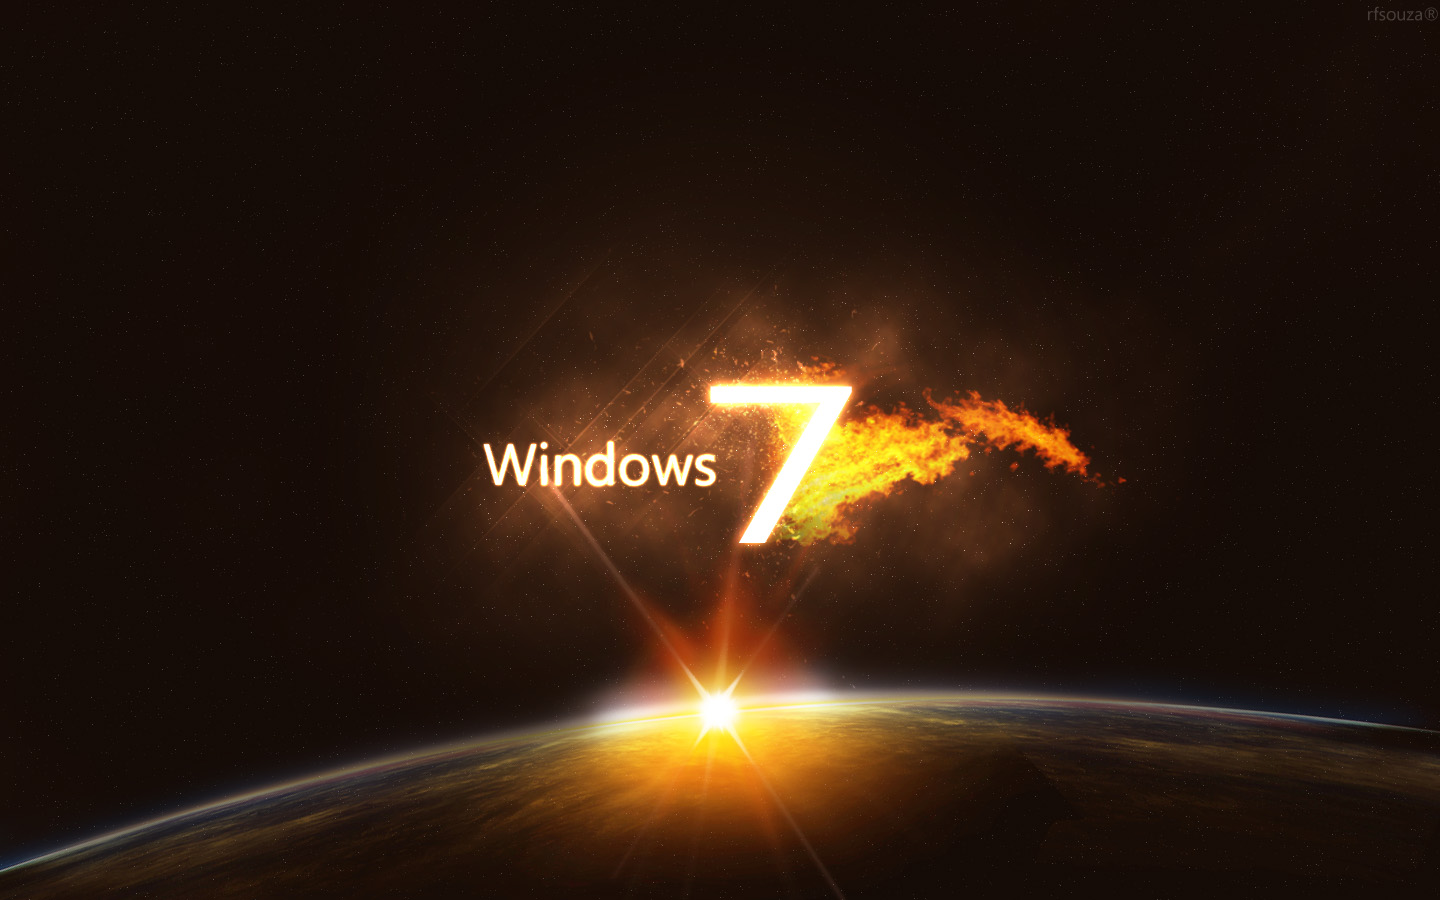 Free Download Hd Wallpapers Hd Wallpapers 1080p Windows 7